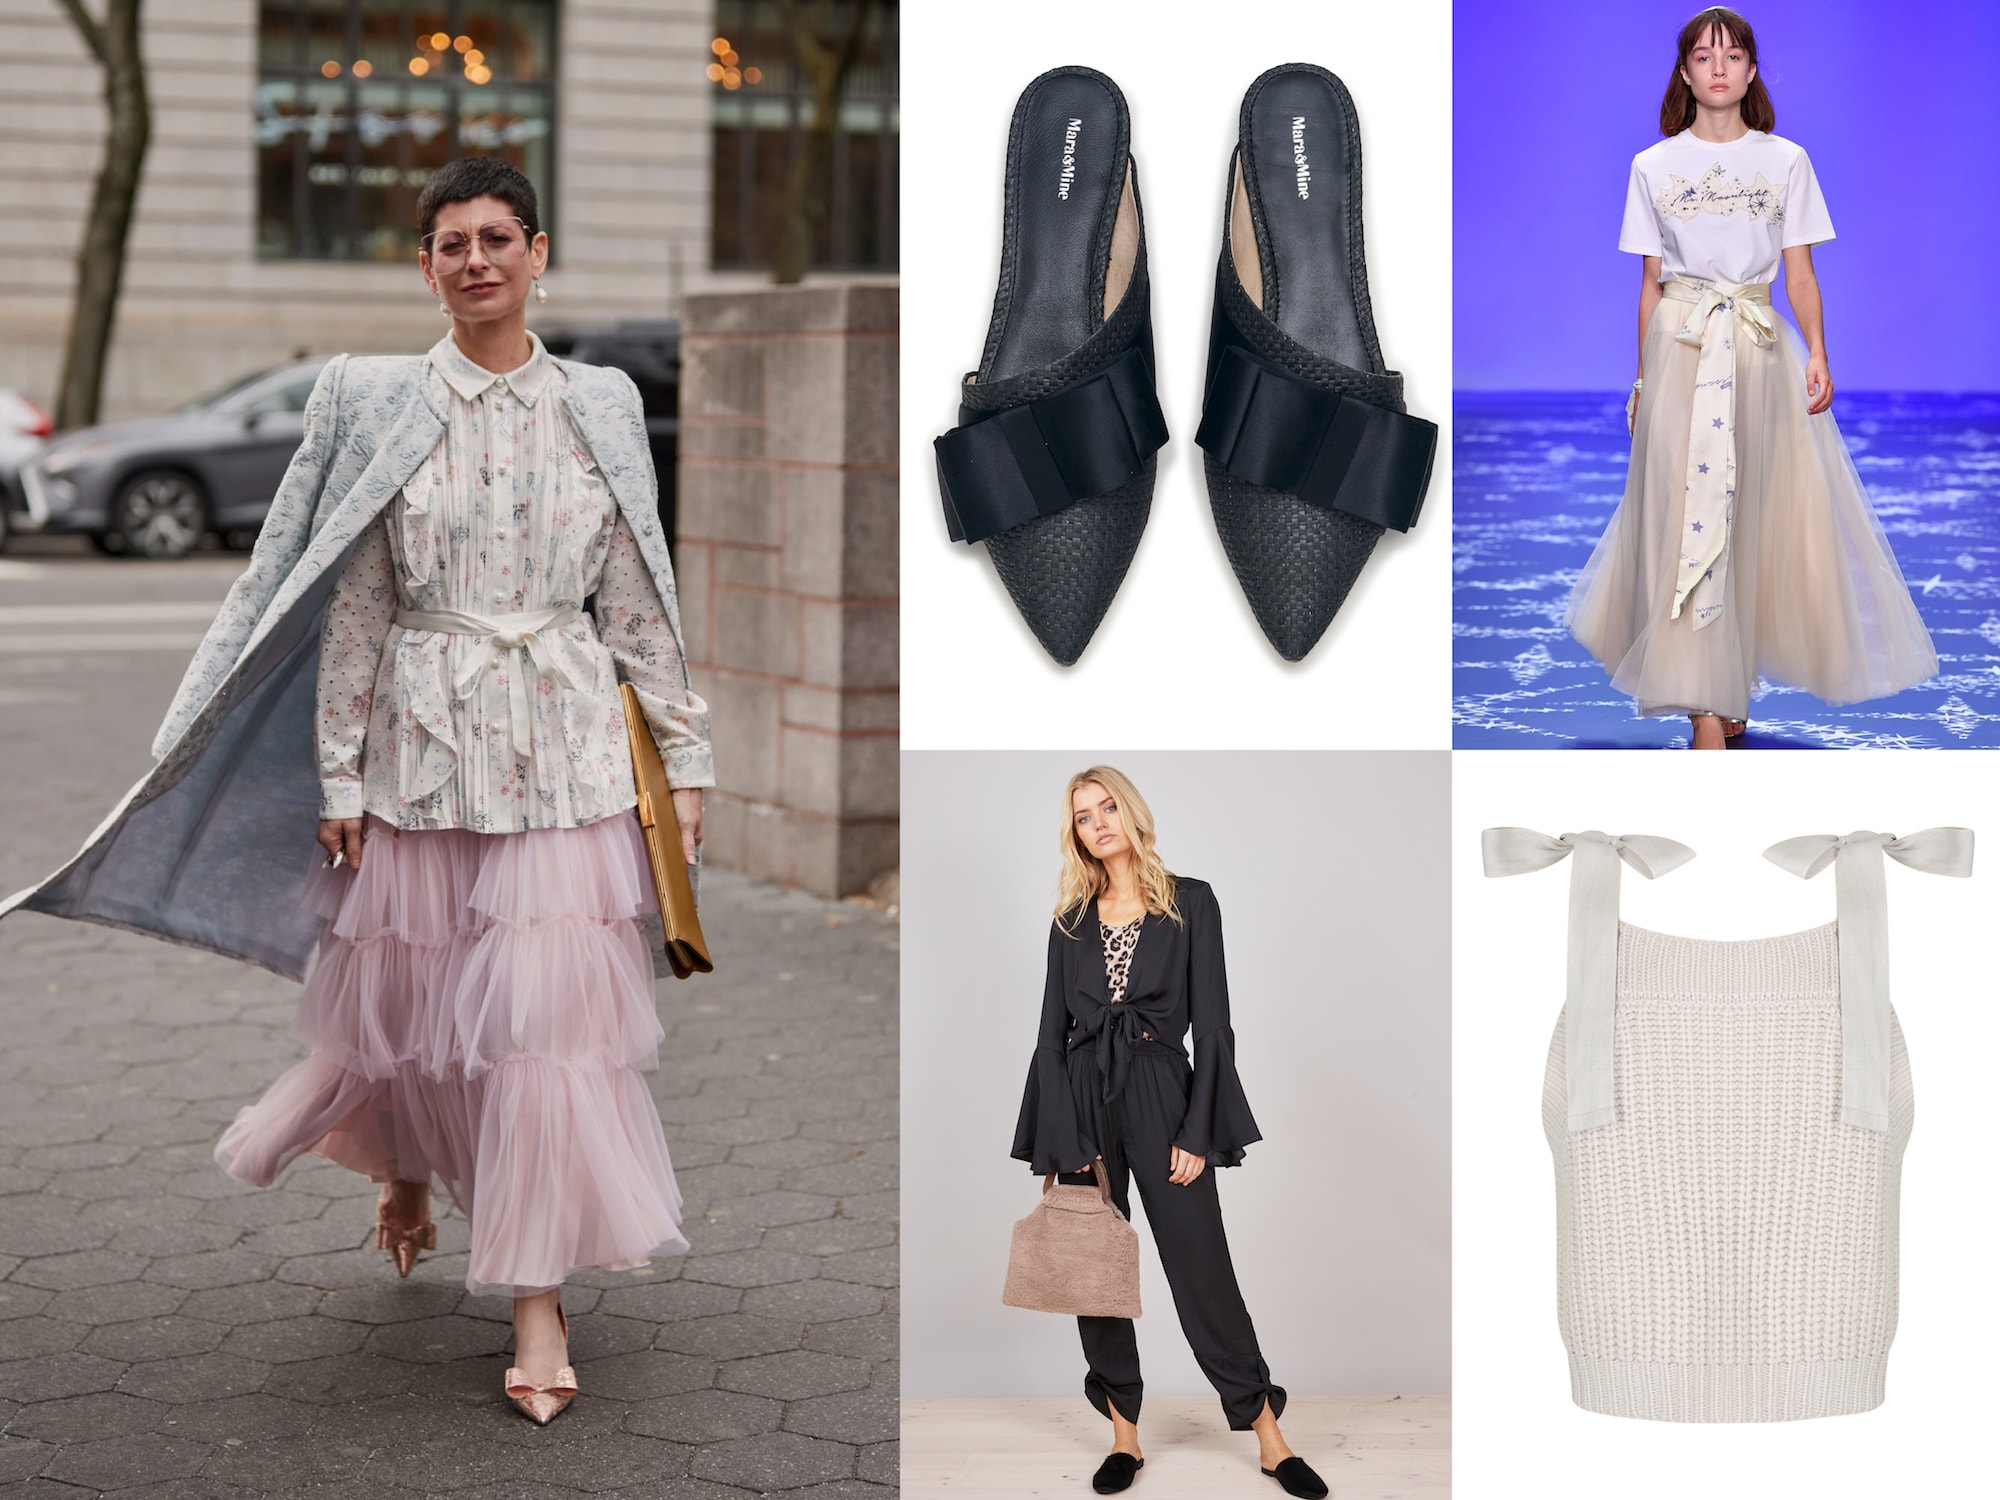 Wearable trends for Autumn 2019 as seen on the streets at